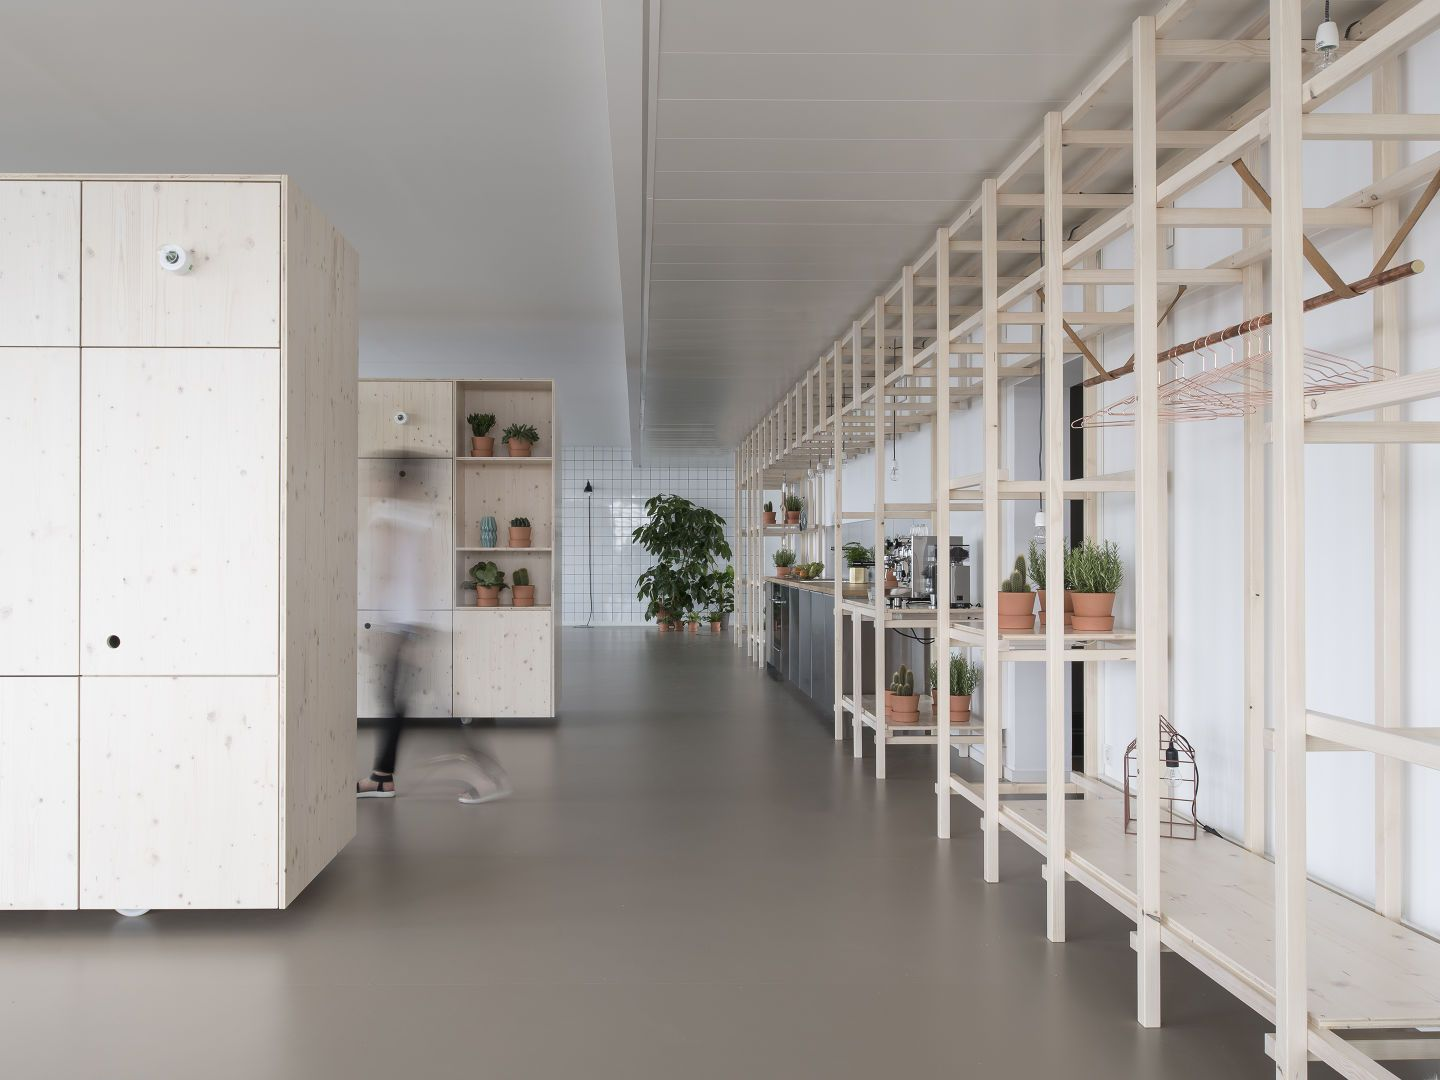 """The buzzwords """"open, direct, dynamic, straightforward"""", standing for the common attributes for the project in the center of Munich, describe a flexible, playful, and creative space for workshops, meetings and events upon two floors. Unlike traditional ..."""